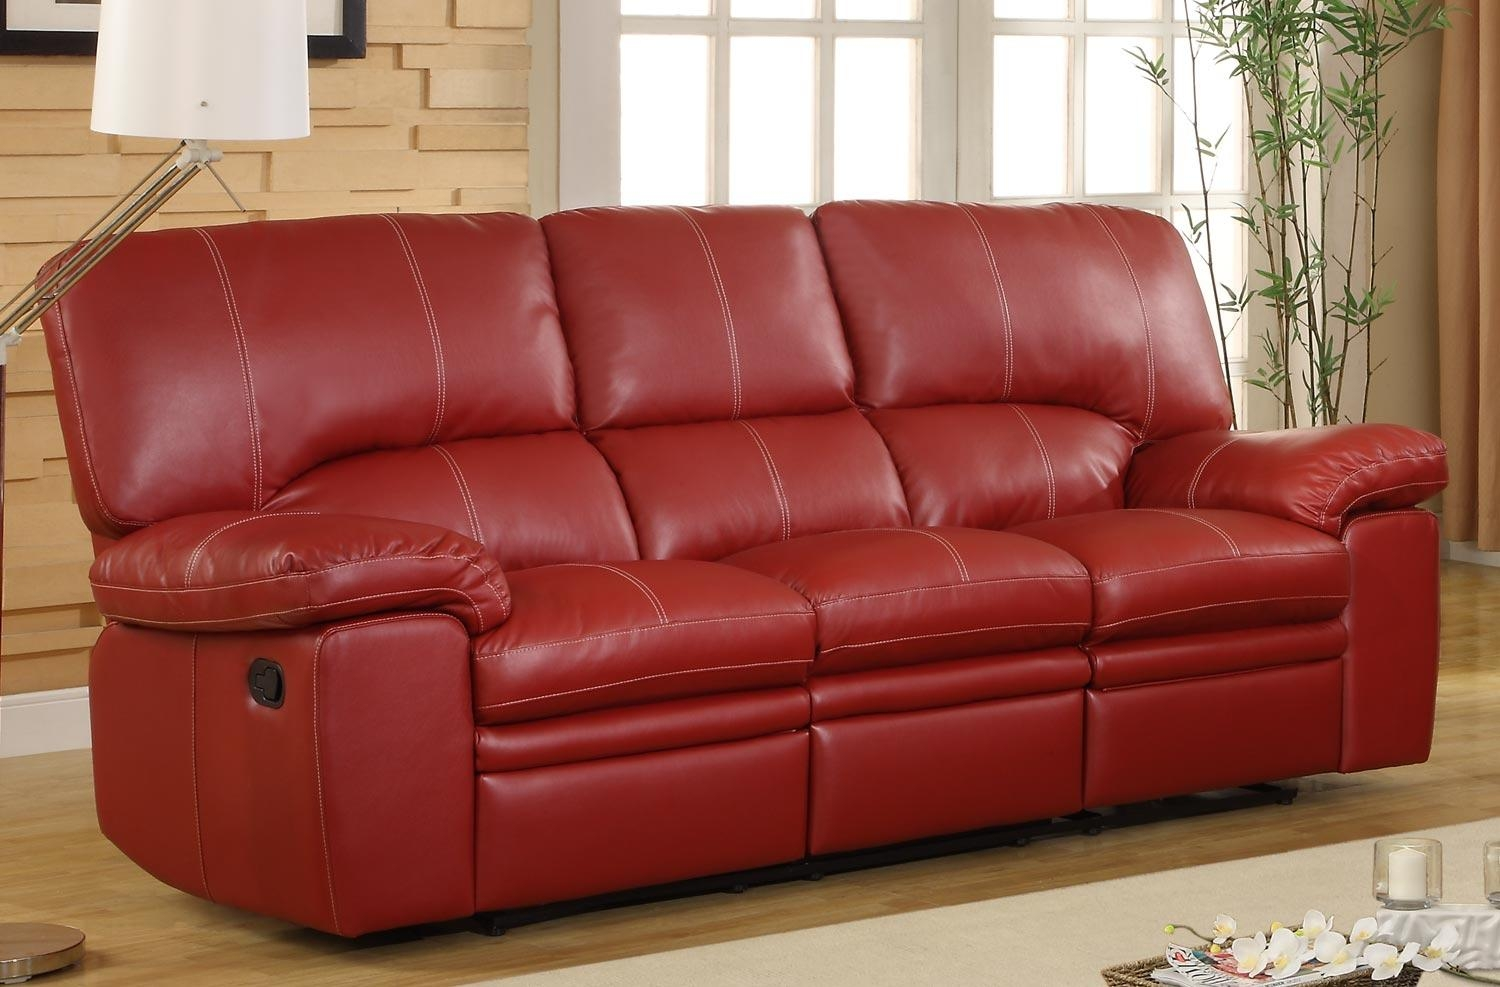 Red Leather Sofa. Leather Sofa. (View 13 of 20)